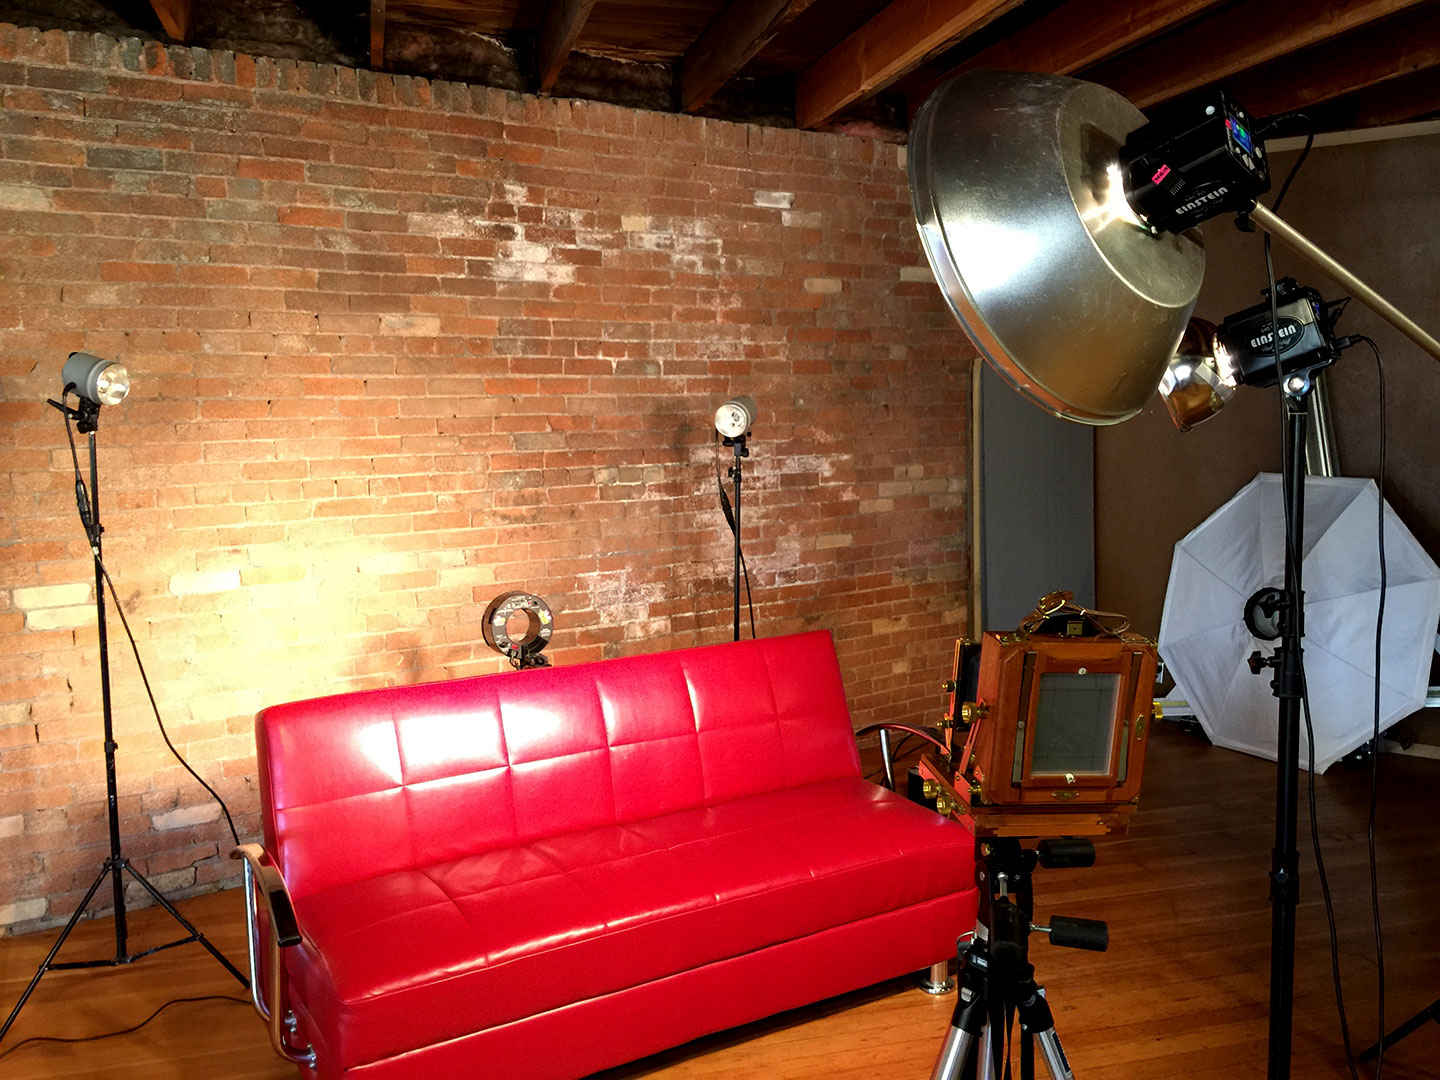 Studio lights and the background for the wet plate photo shoot